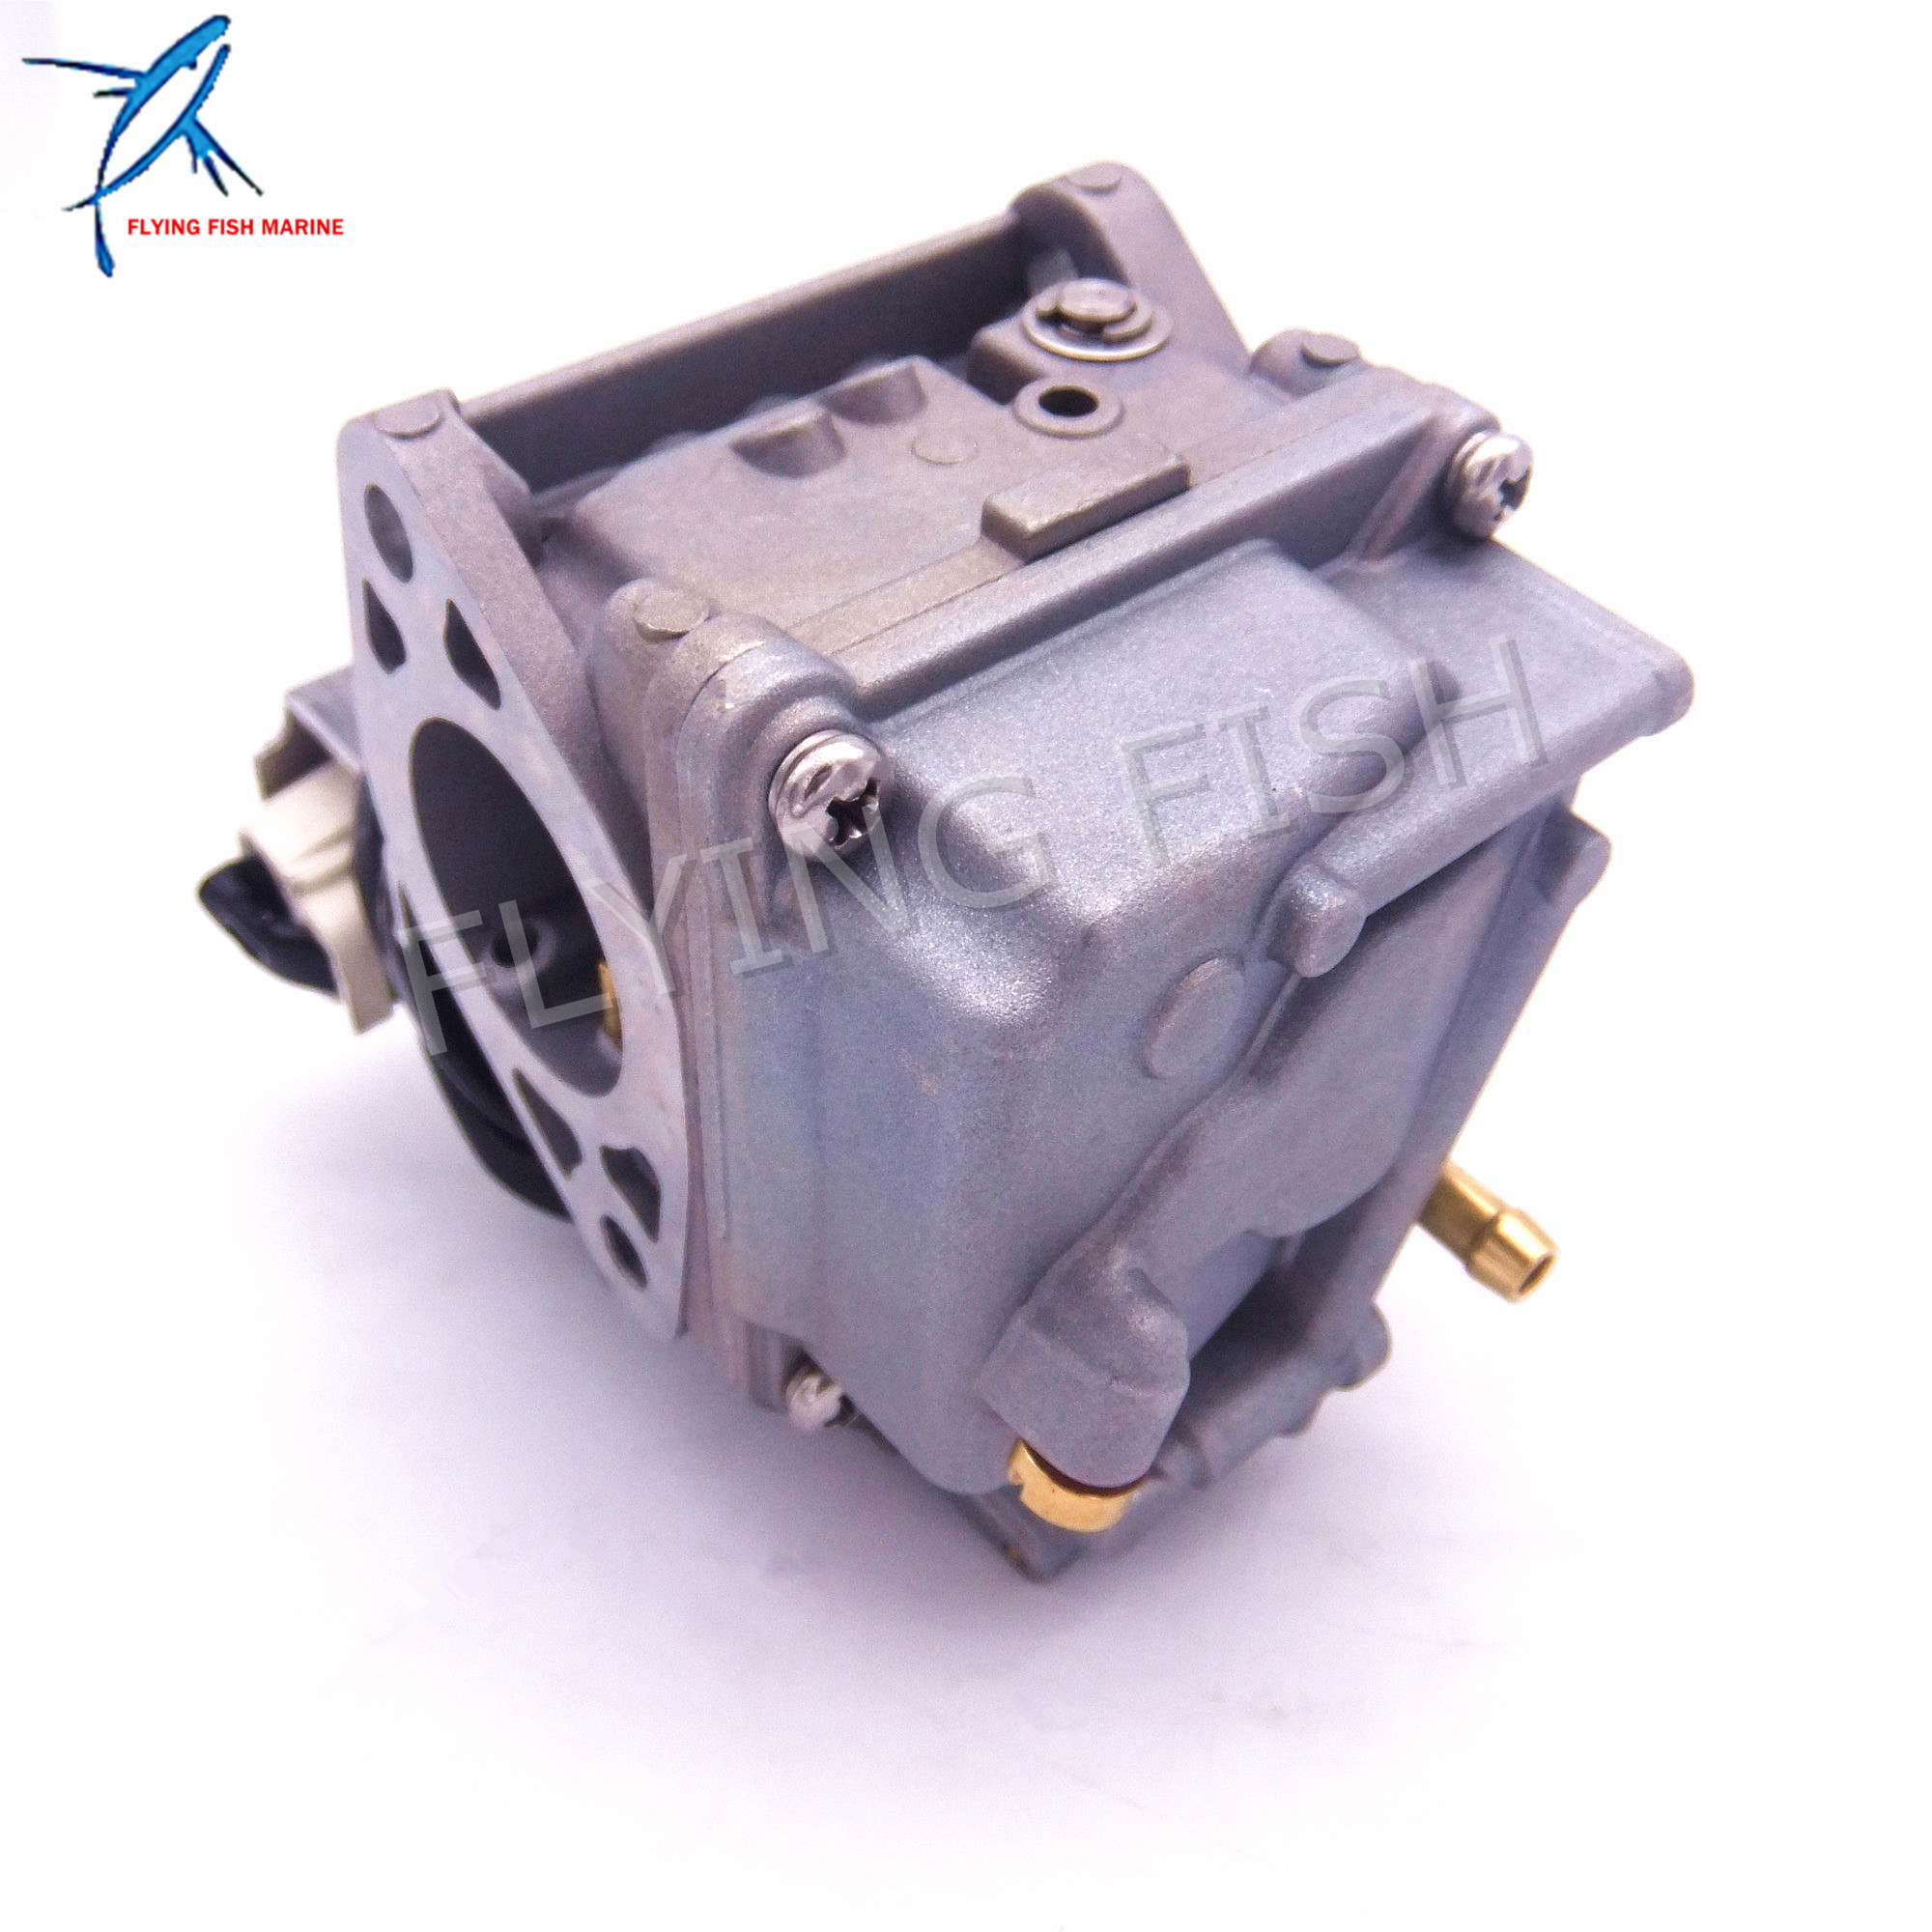 Image 3 - Outboard Engine Carburetor Assy 6AH 14301 00 6AH 14301 01 for Yamaha 4 stroke F20 Boat Motor Free Shipping-in Boat Engine from Automobiles & Motorcycles